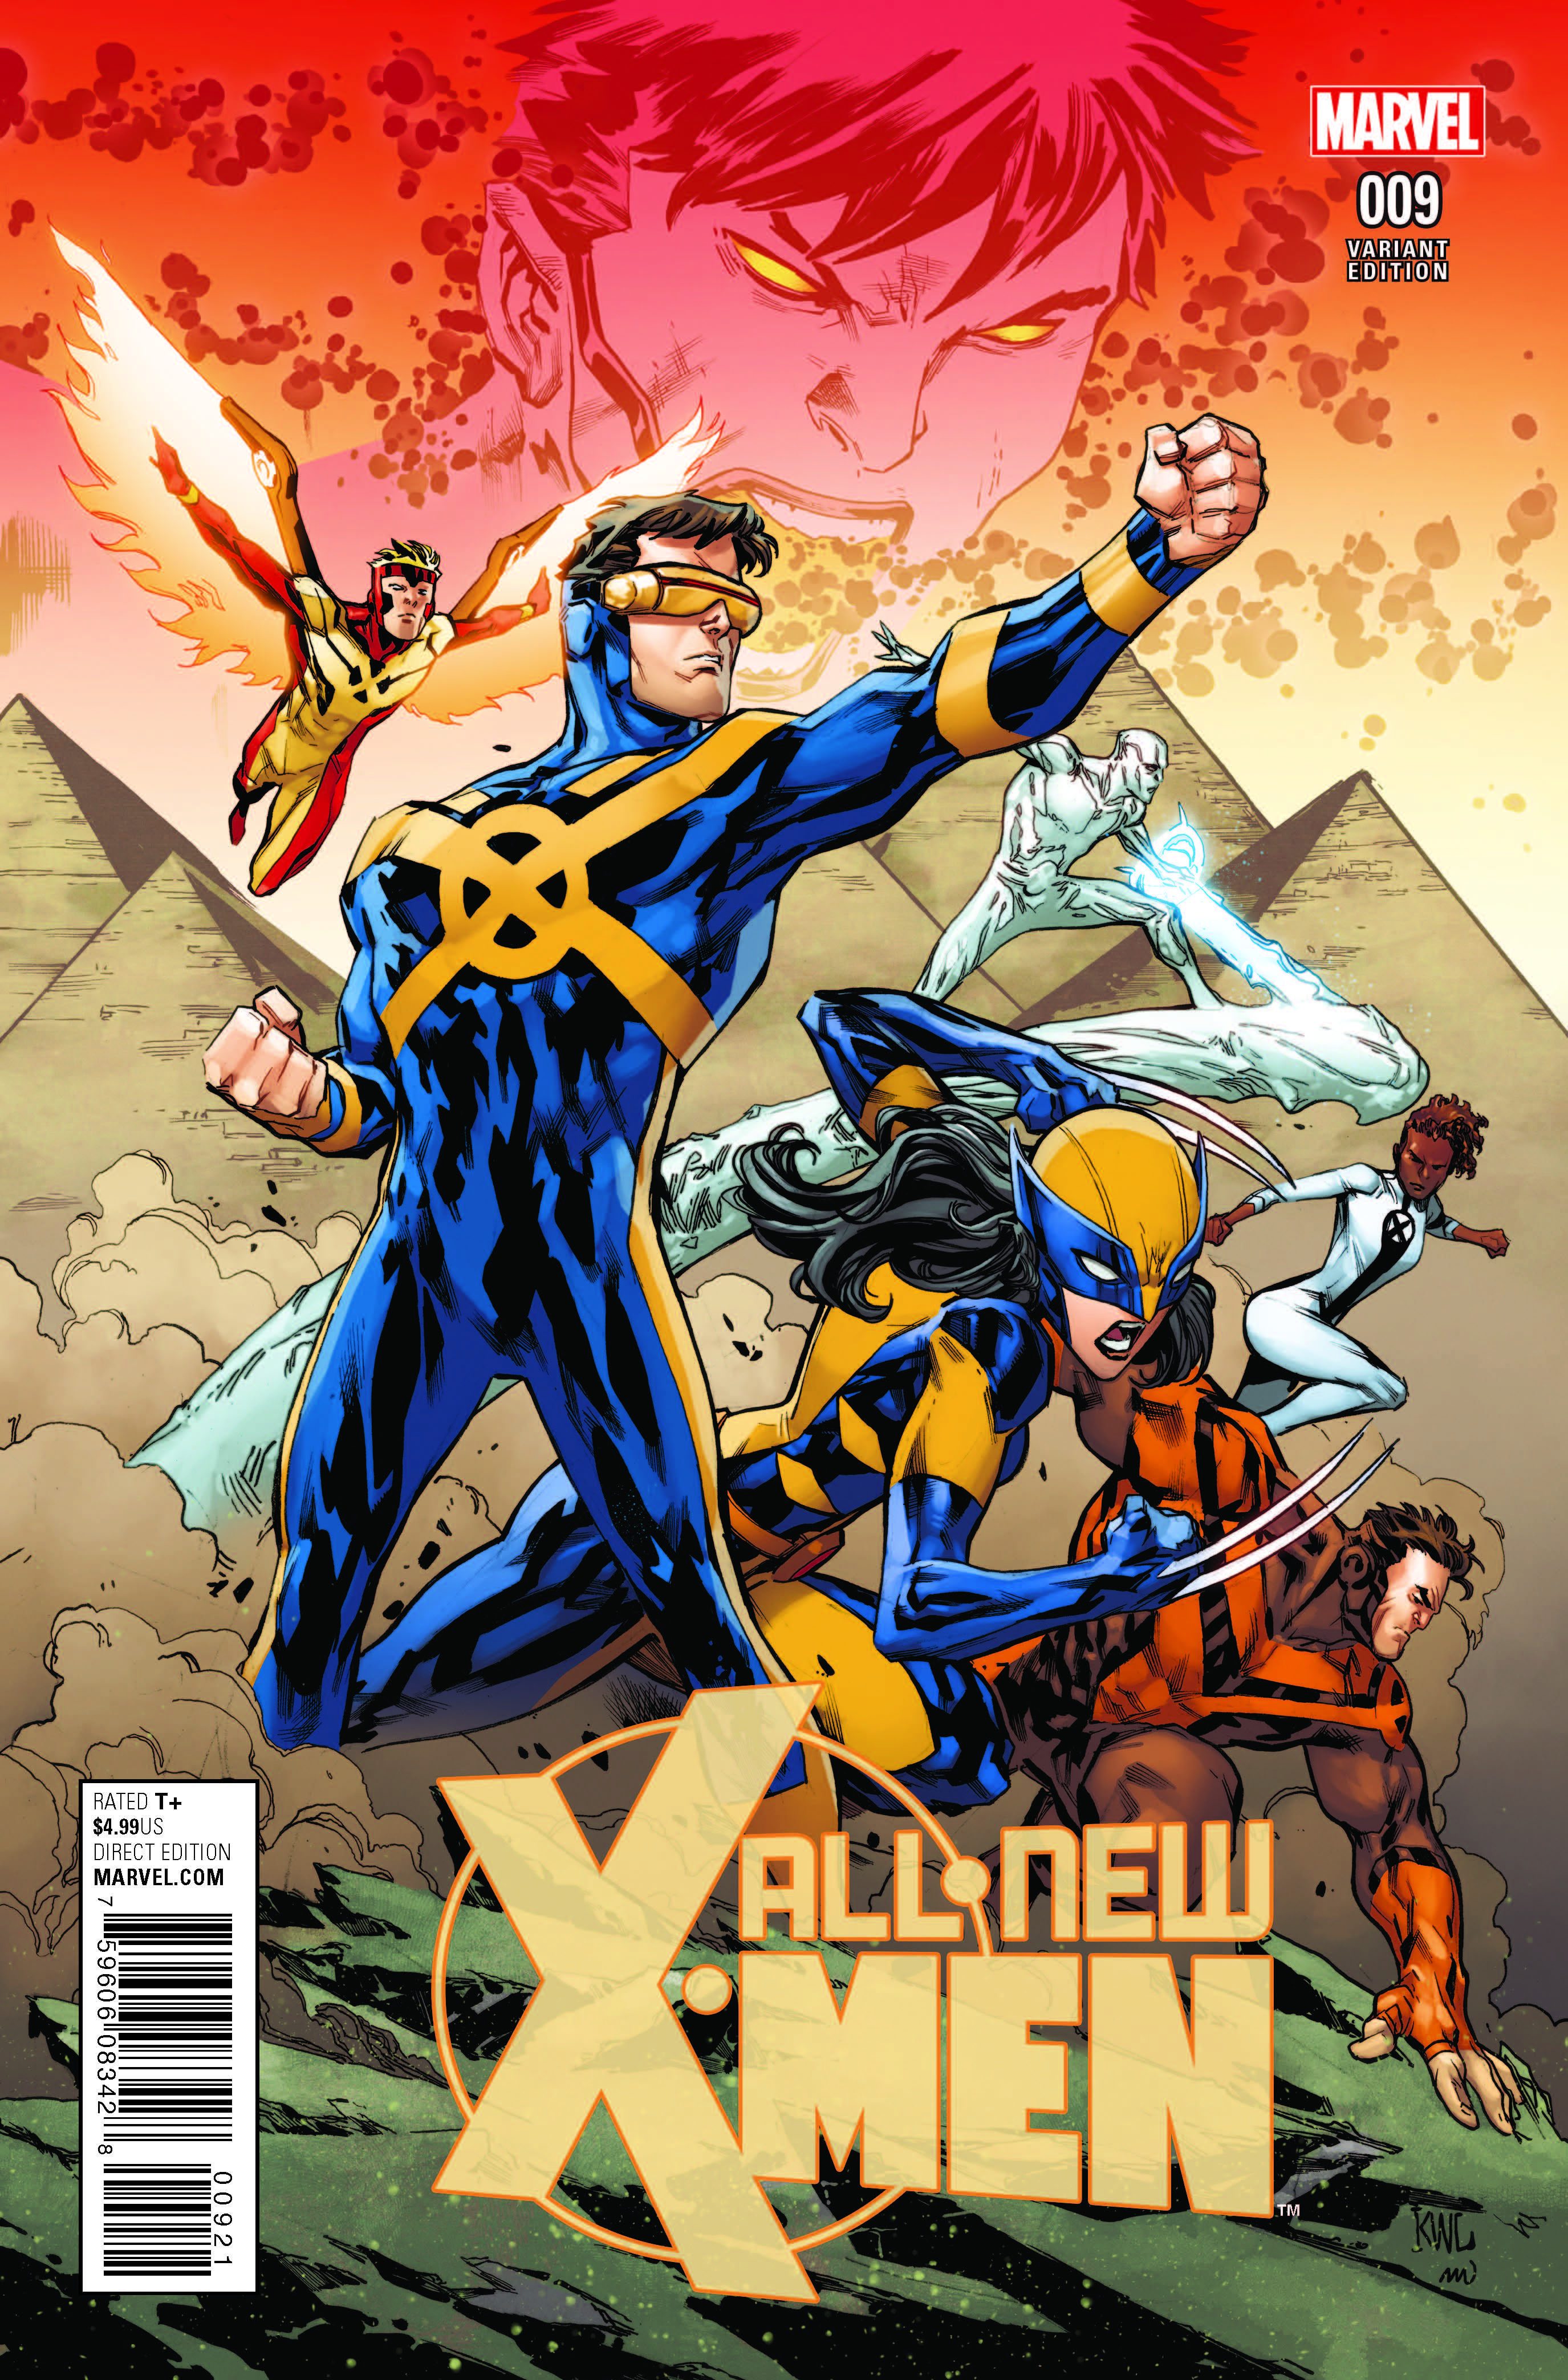 Marvel Preview: All New X-men #9